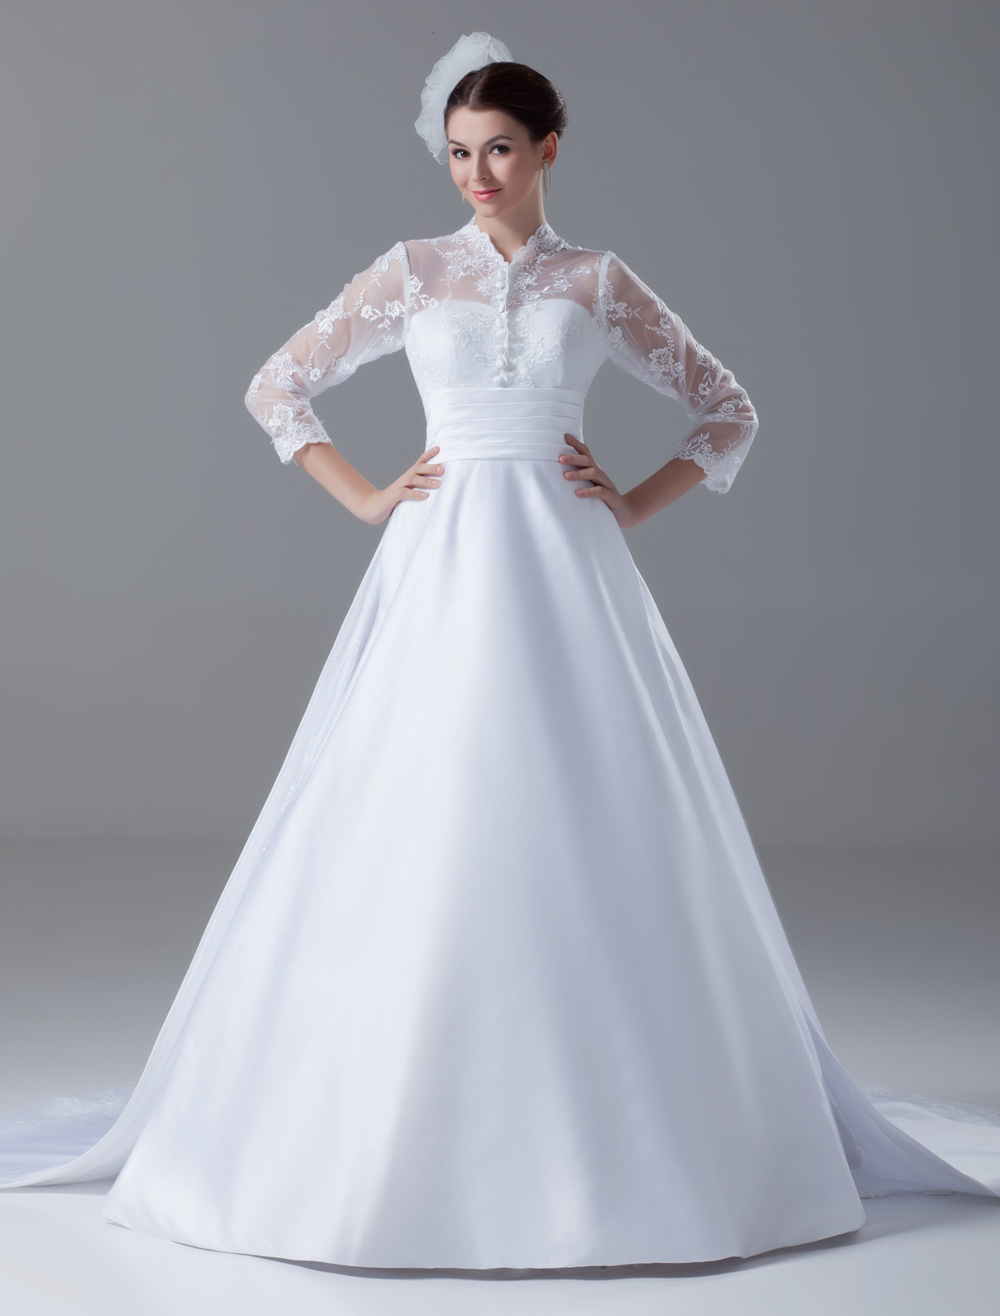 Court Train White Ball Gown Lace Bridal Wedding Gown with High Collar